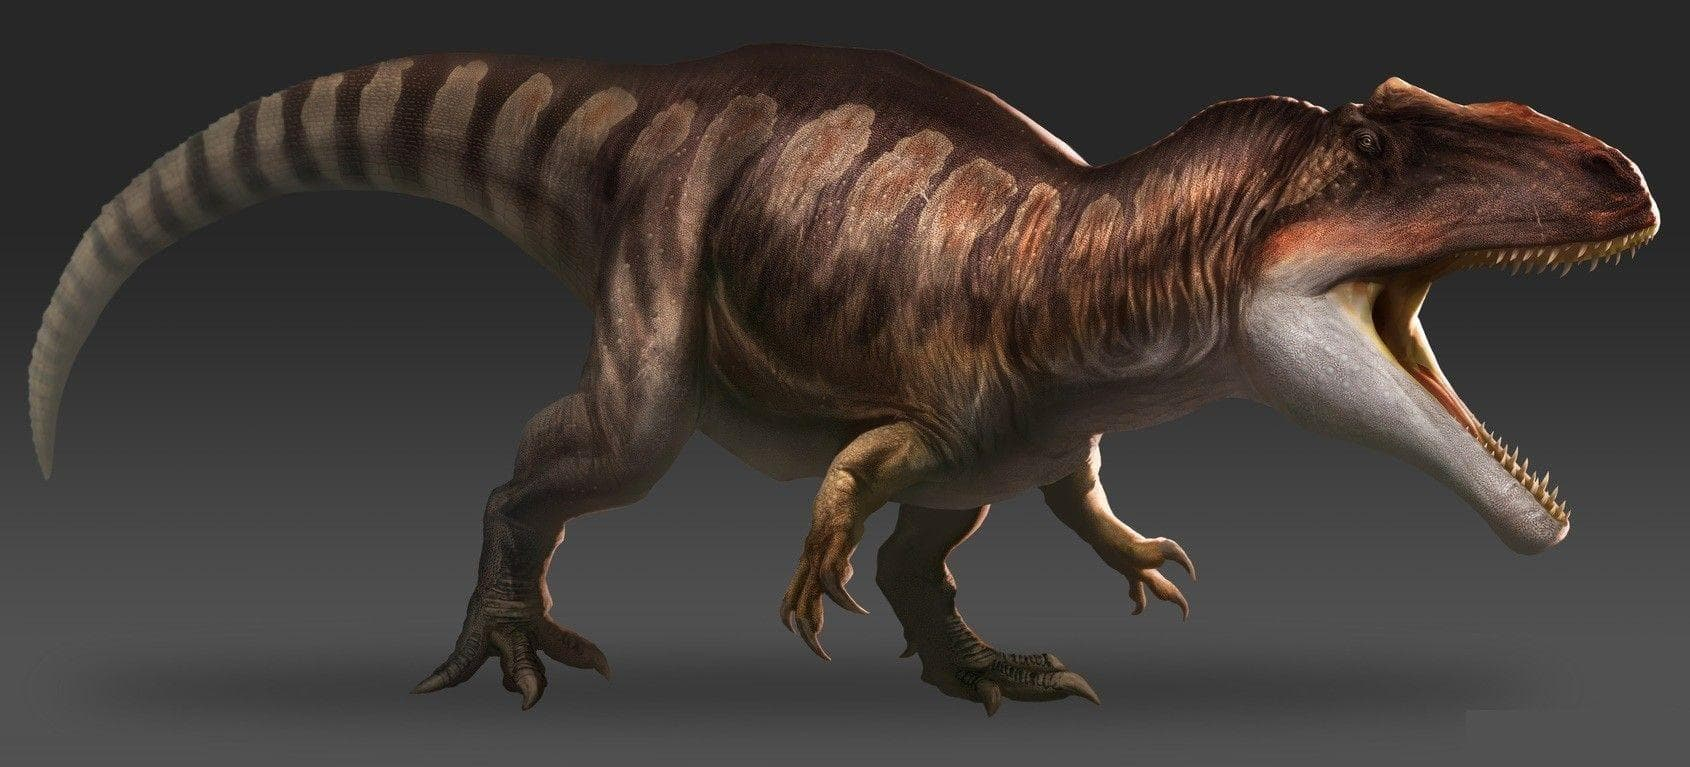 Random Scariest Types of Dinosaurs Ever to Walk the Earth